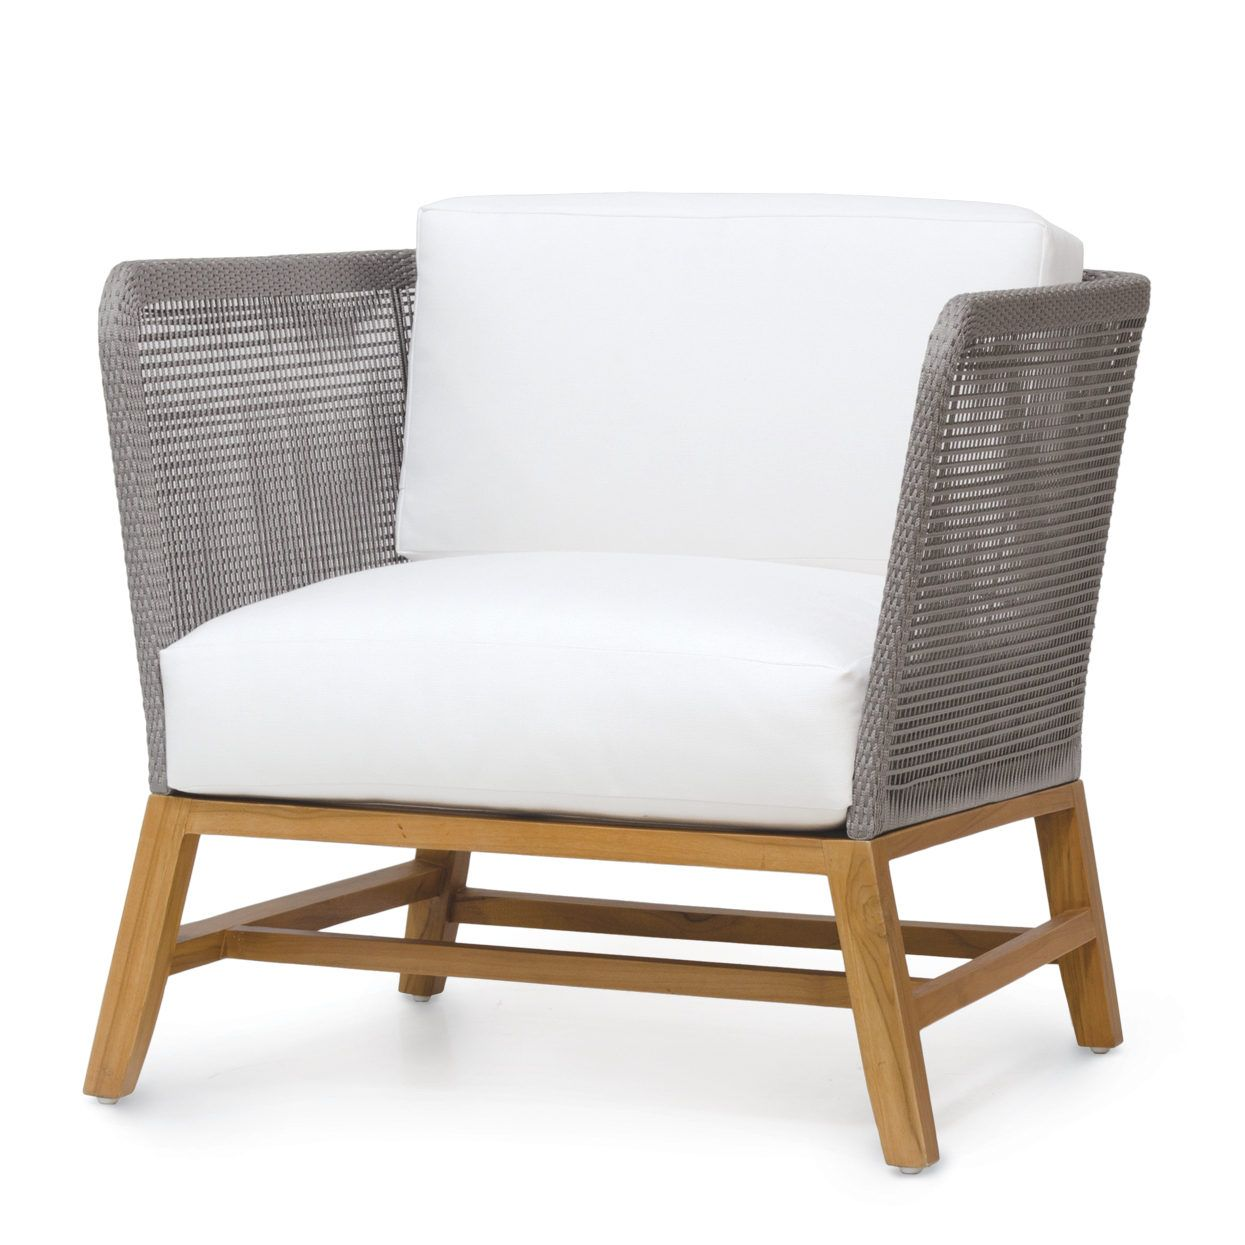 AVILA OUTDOOR LOUNGE CHAIR Lounge chair outdoor, Used